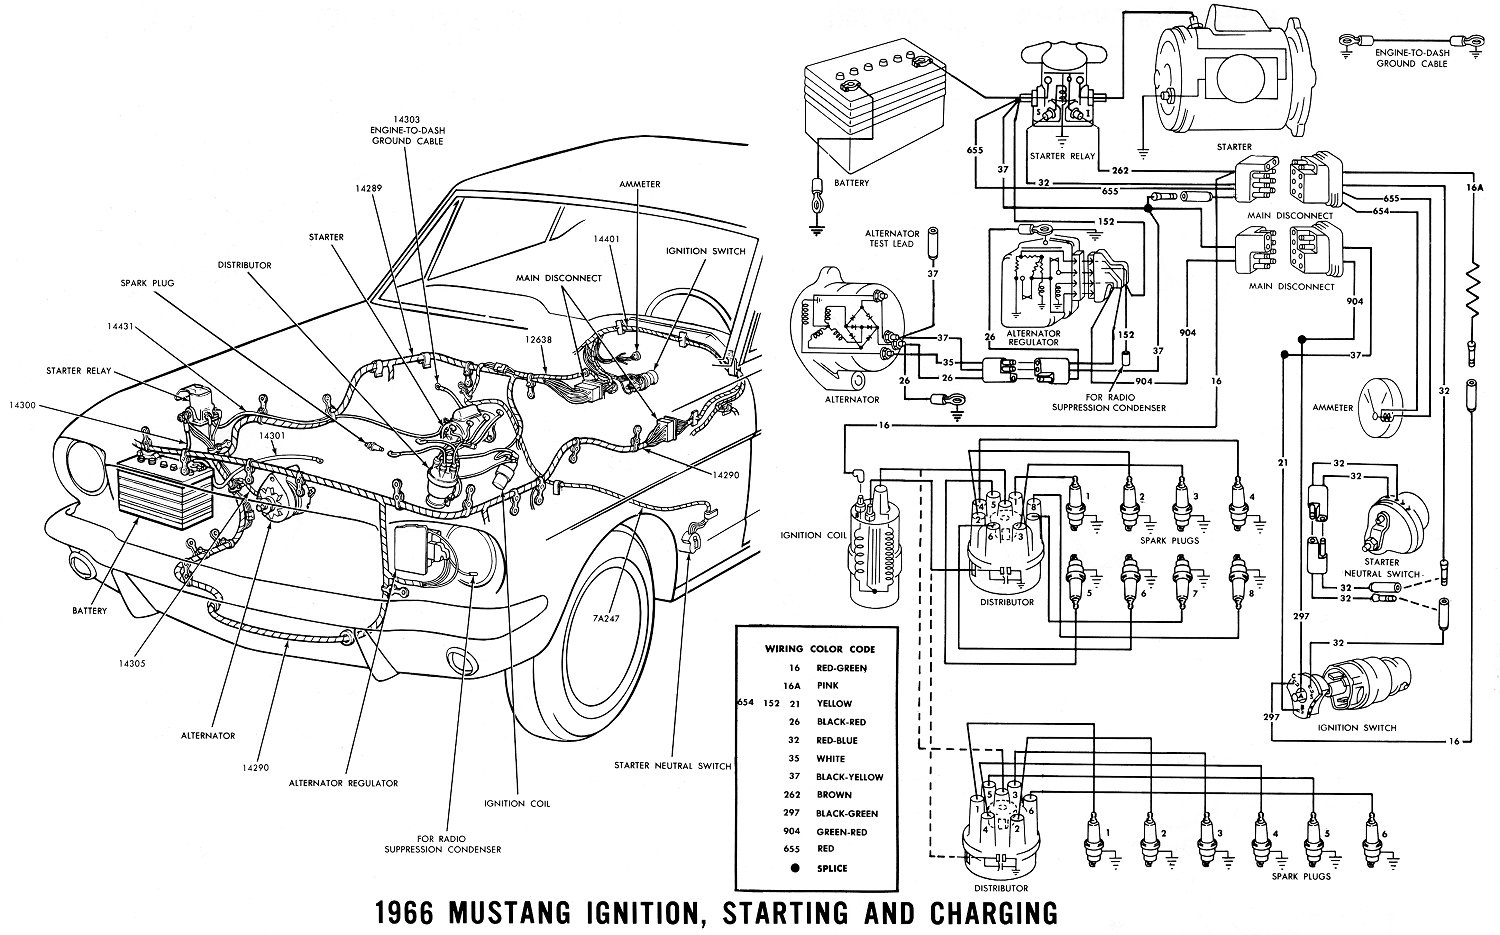 hight resolution of ford mustang questions ignition not working on 66 mustang cargurus starter solenoid wiring diagram